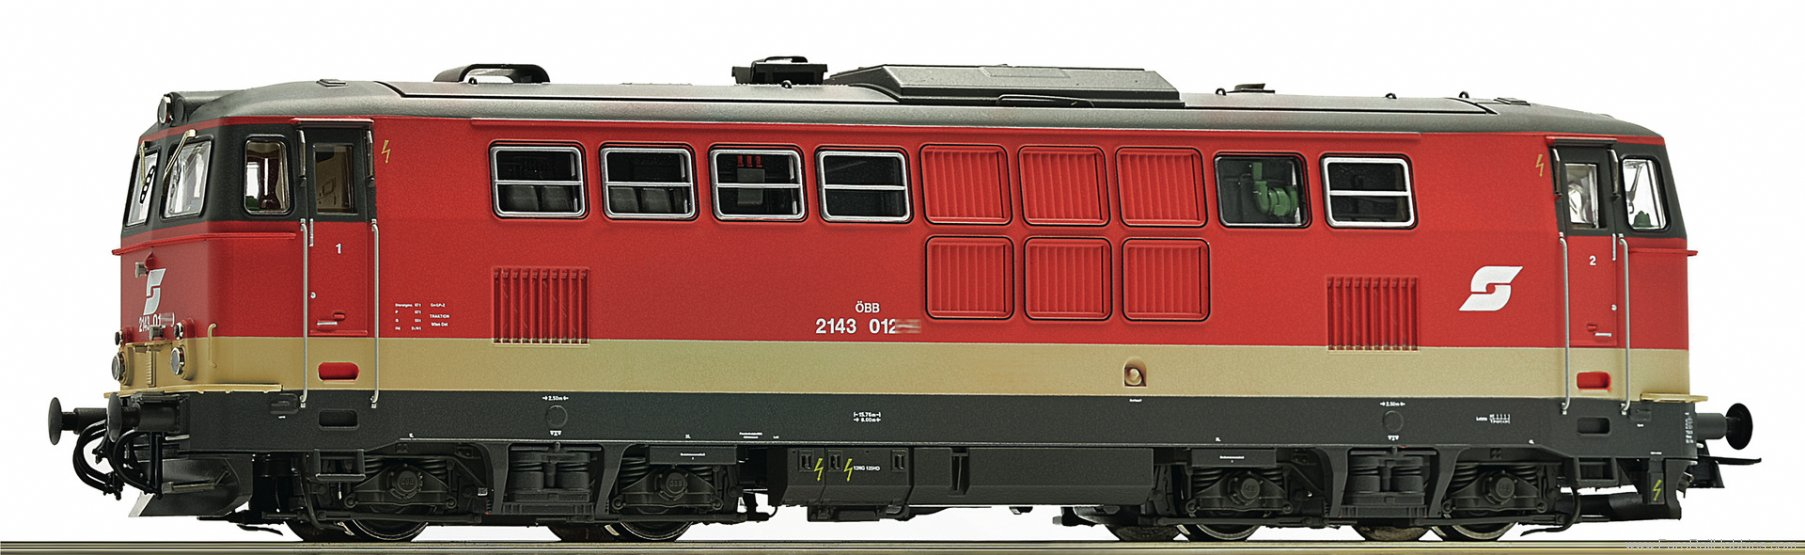 Roco 72721 OBB 2143 008 Diesel Locomotive (Digital Sound